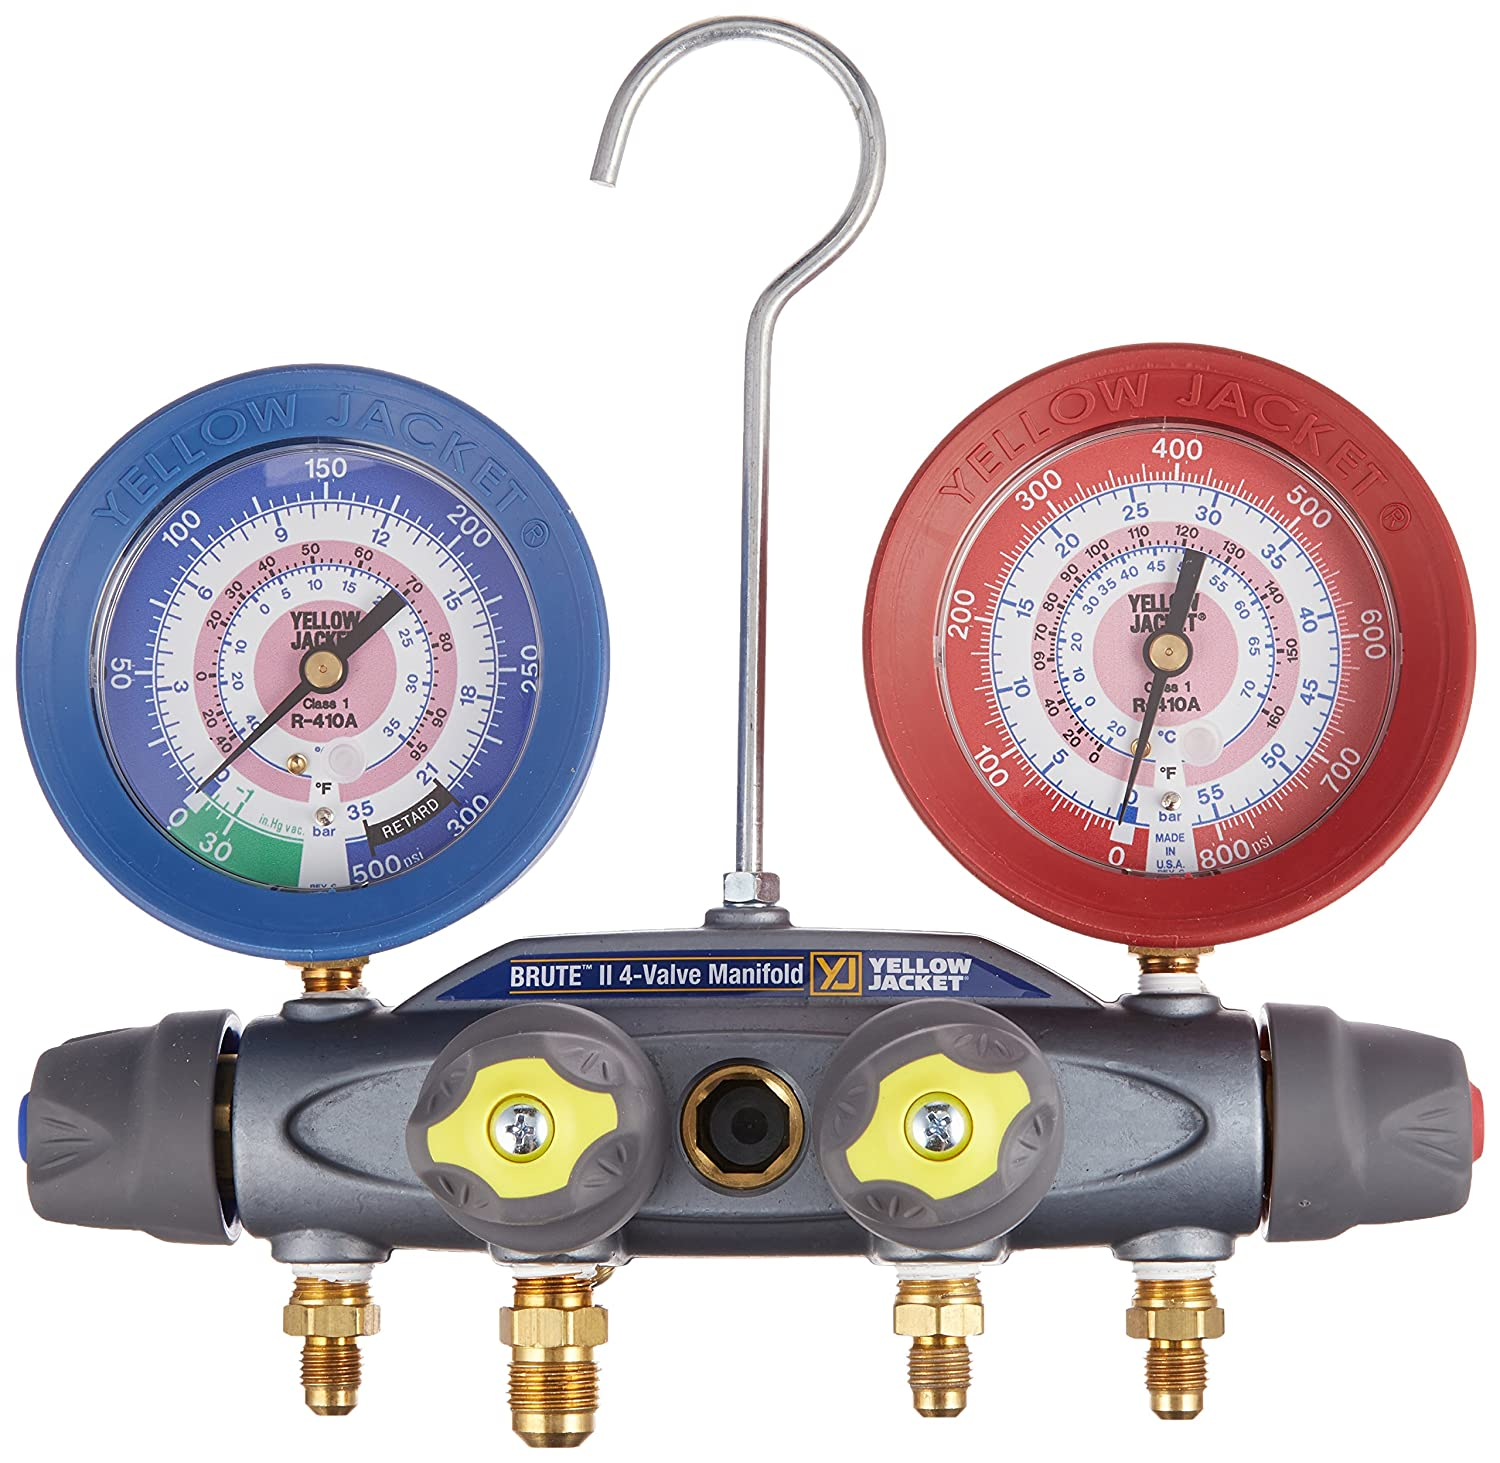 Yellow Jacket 46000 Brute II 4-Valve Manifold with Gauges, bar/psi, R-410A, Red/Blue Fotronic Corporation